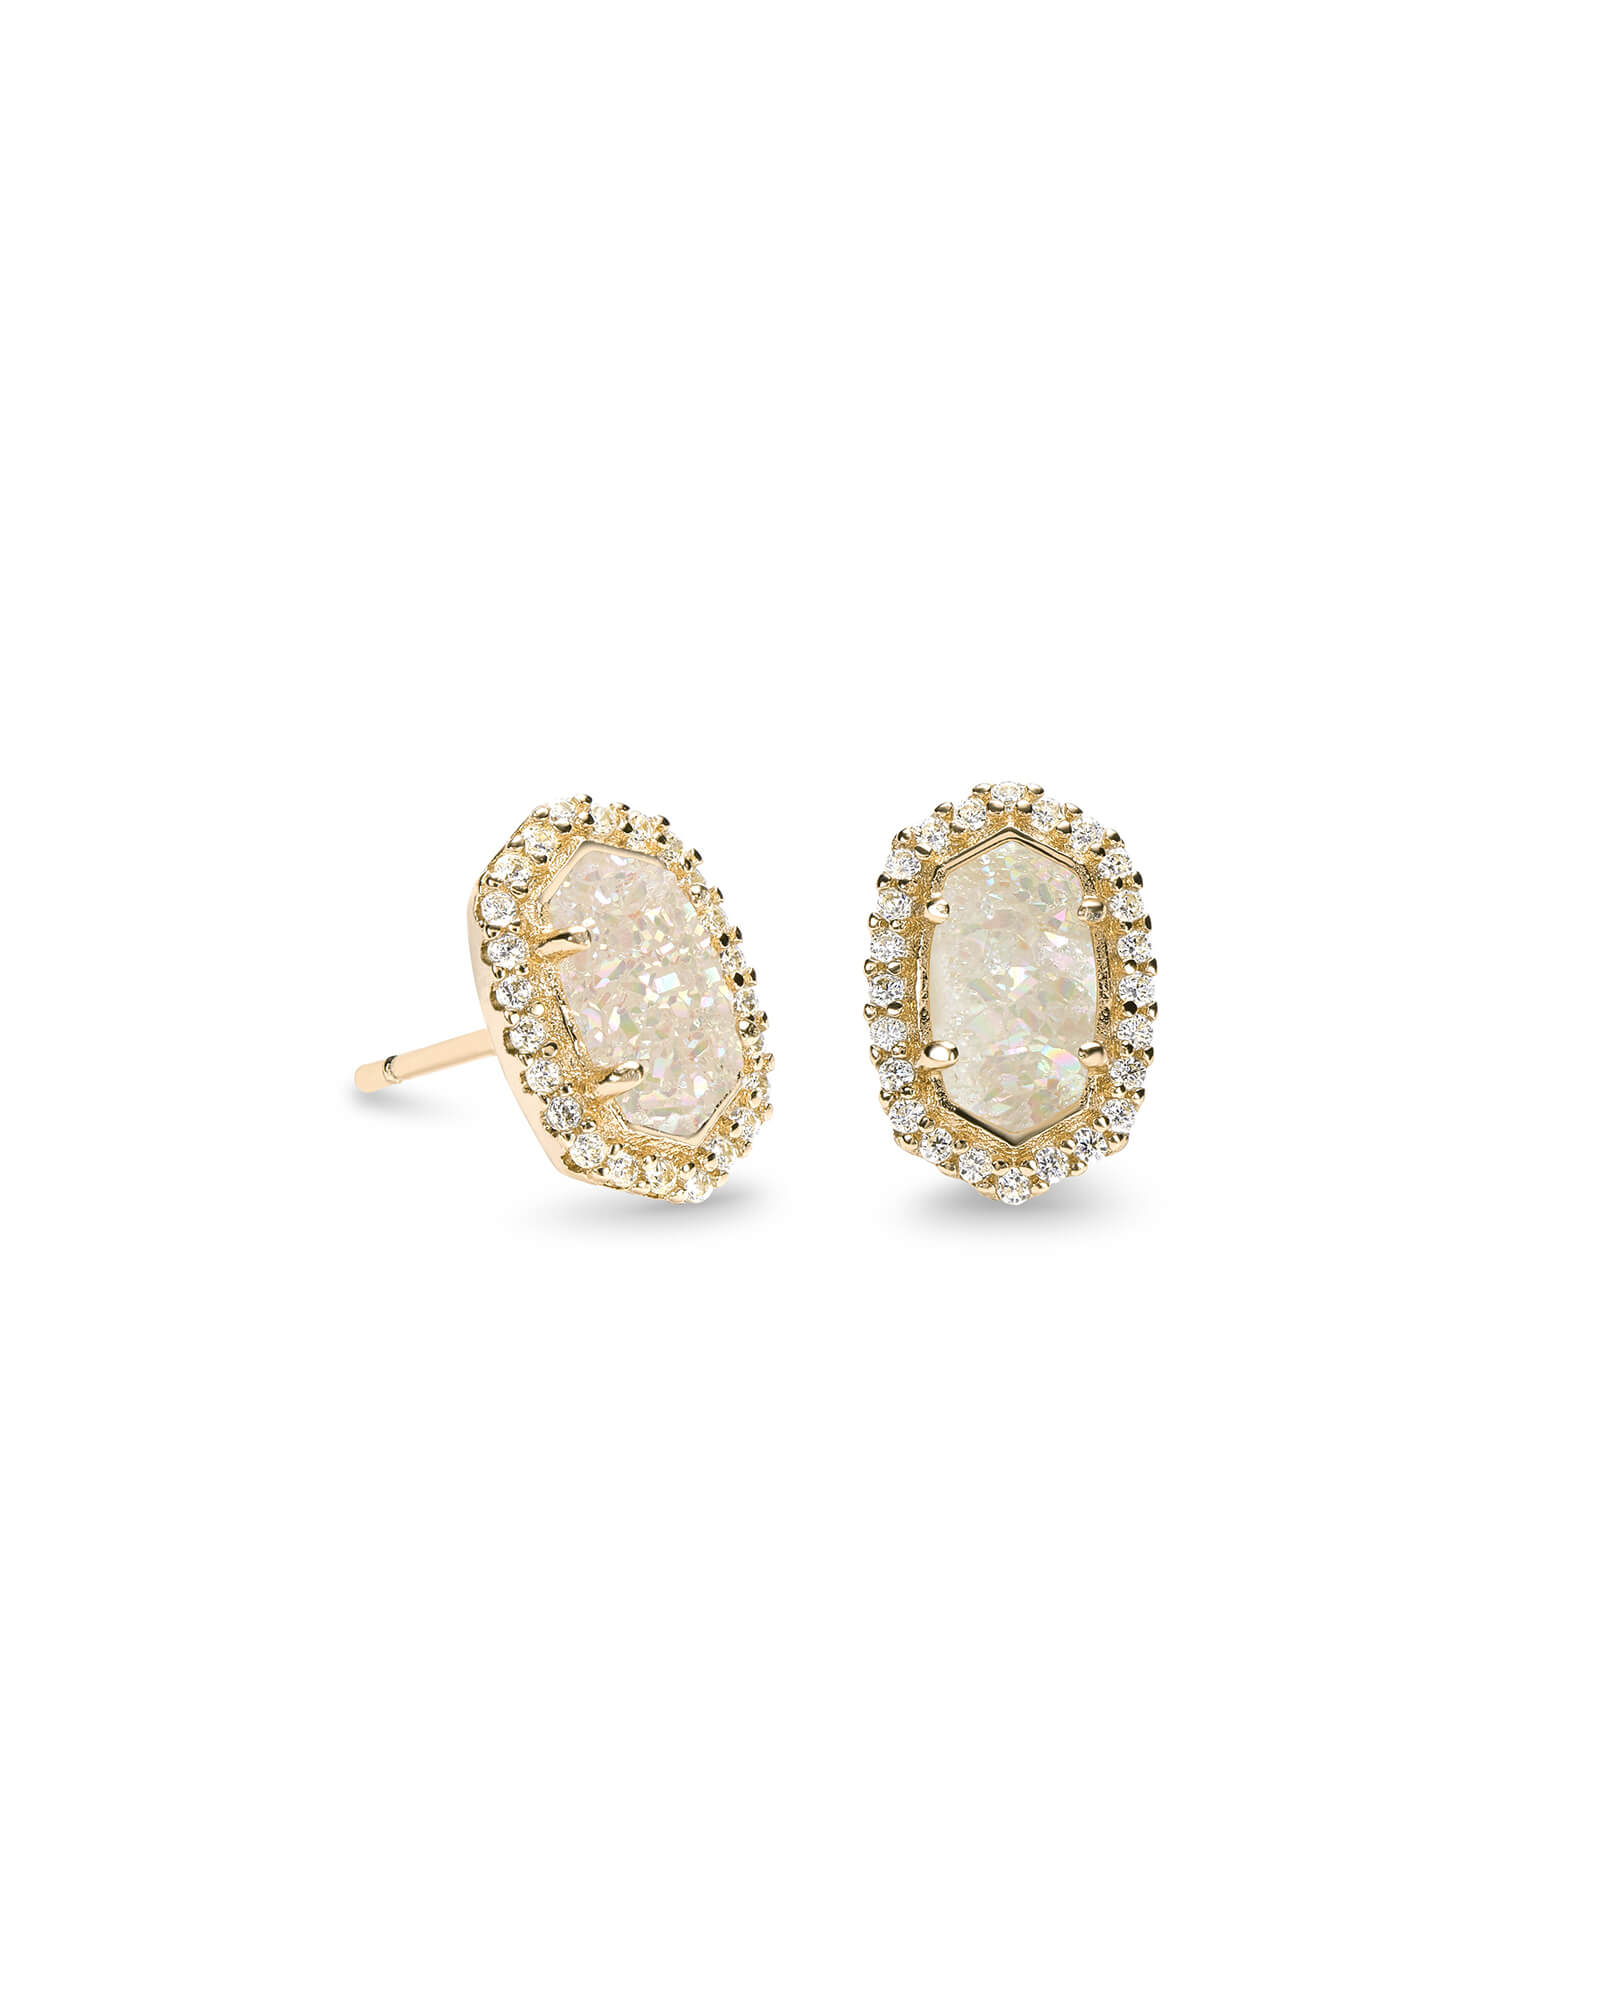 Cade Gold Stud Earrings in Iridescent Drusy